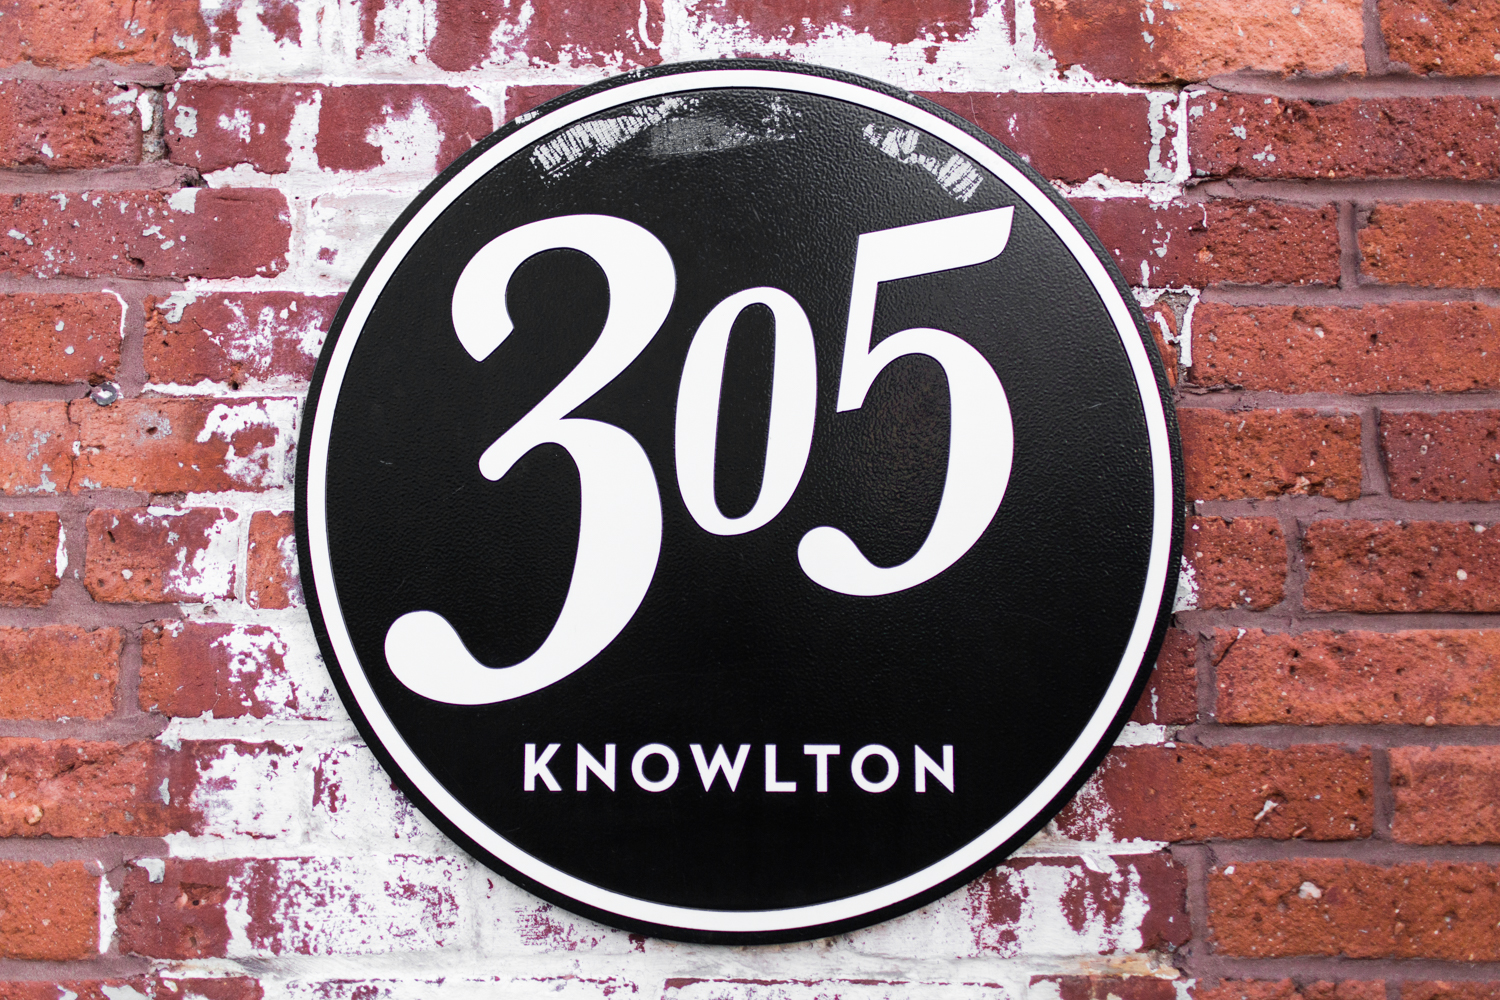 artist-studio-bridgeport-connecticut-305-knowlton